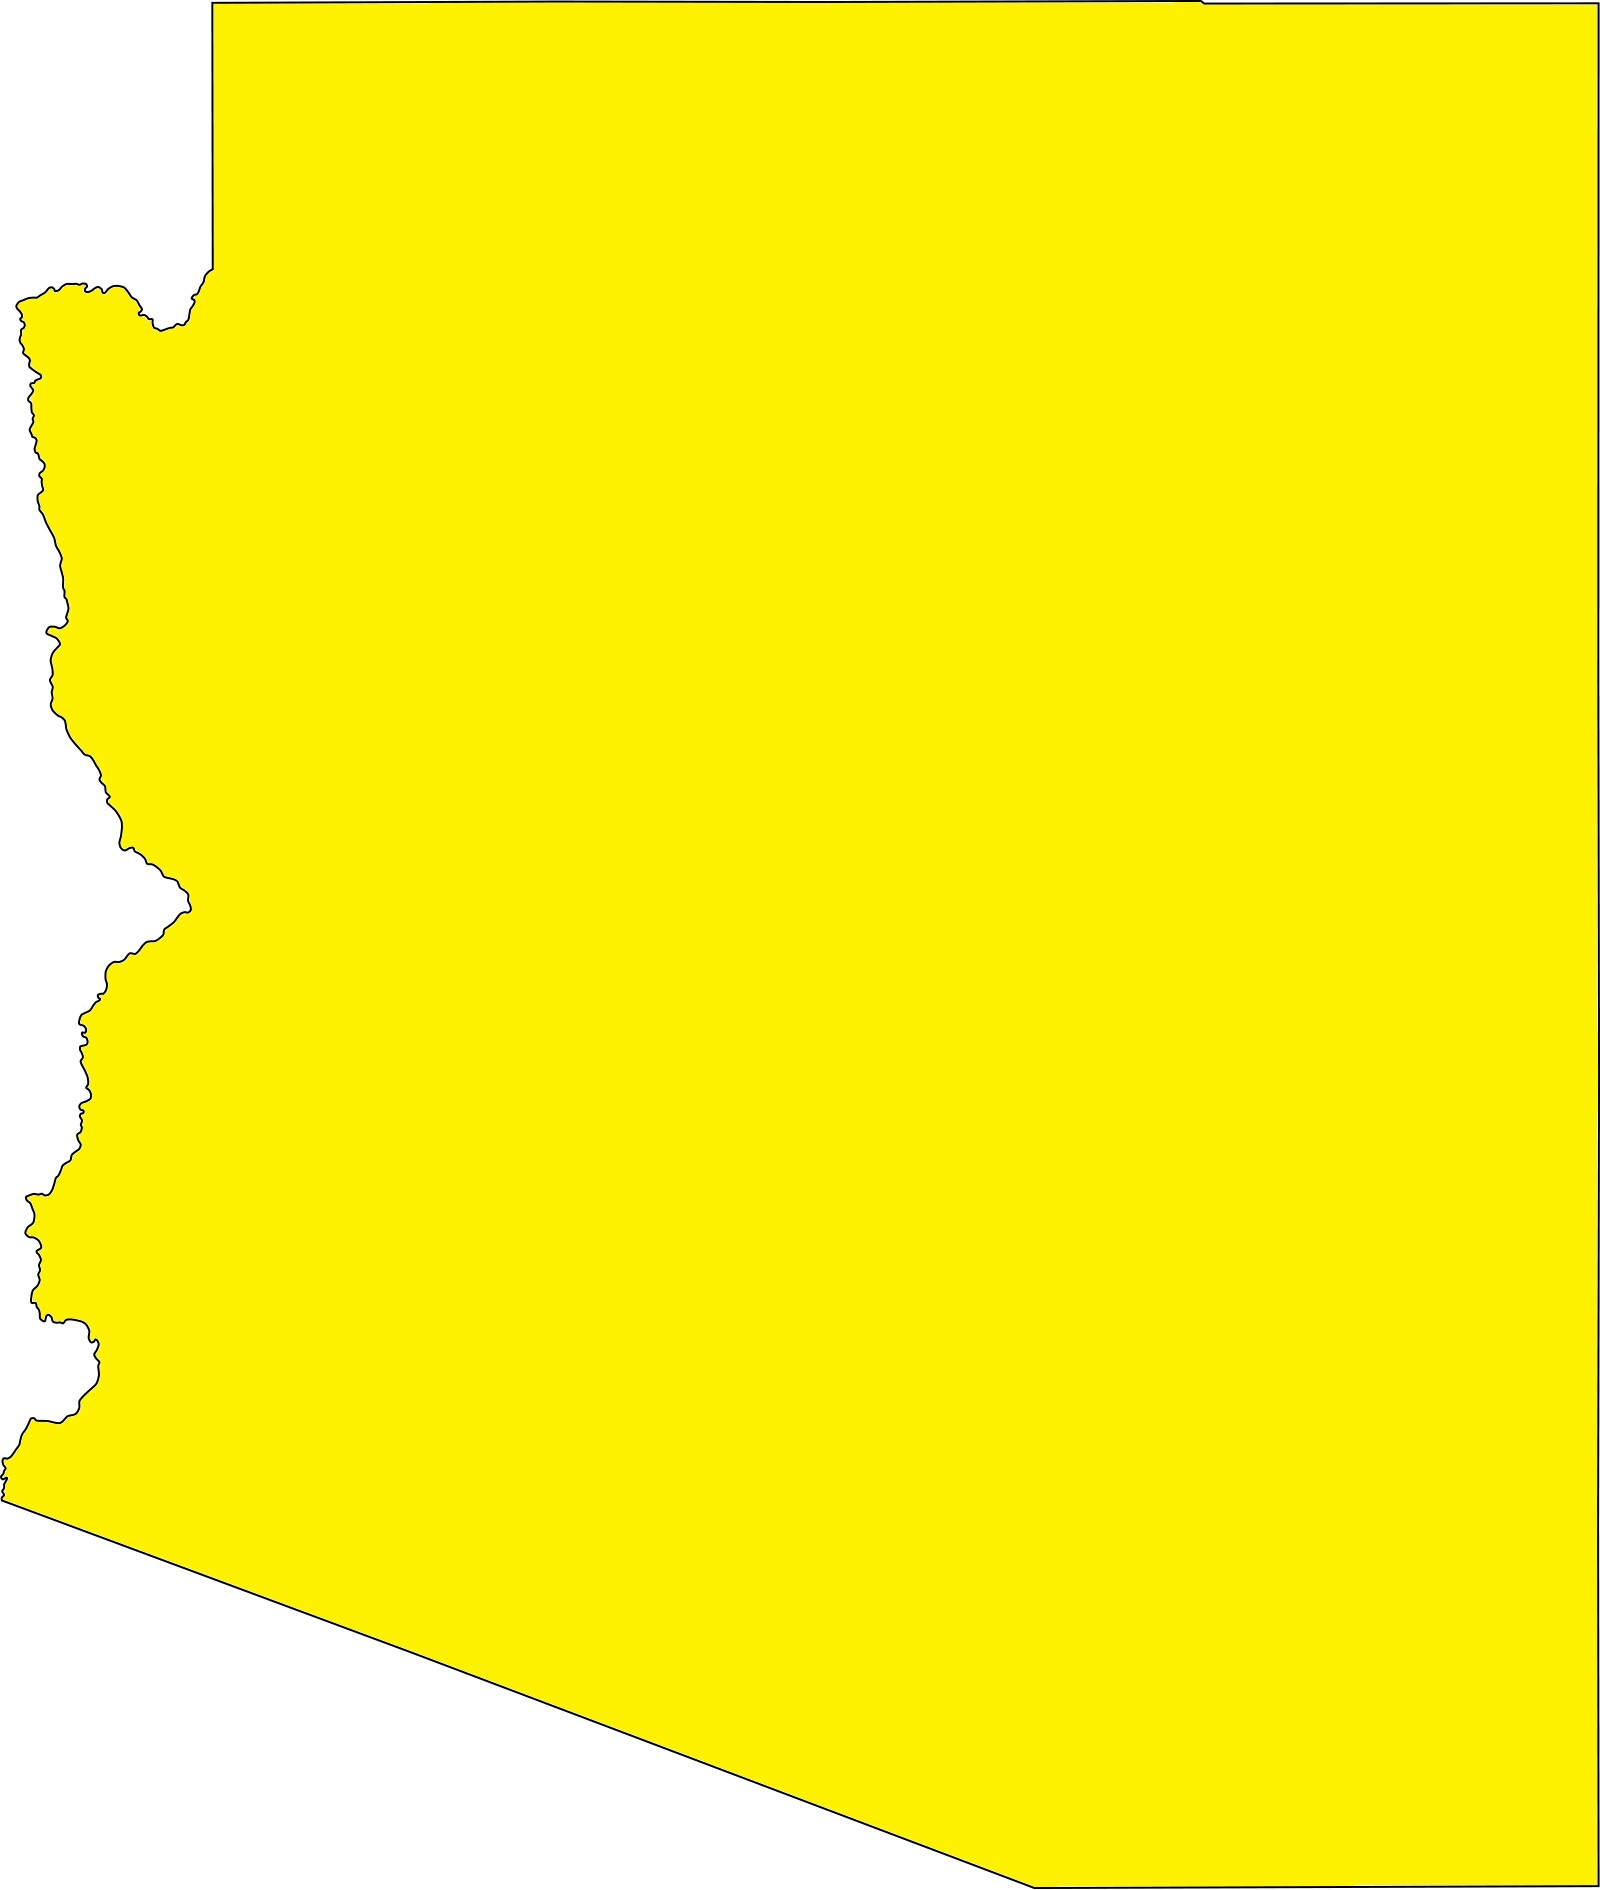 Arizona Blank Outline Map   Blank Outline Map of Arizona – 2